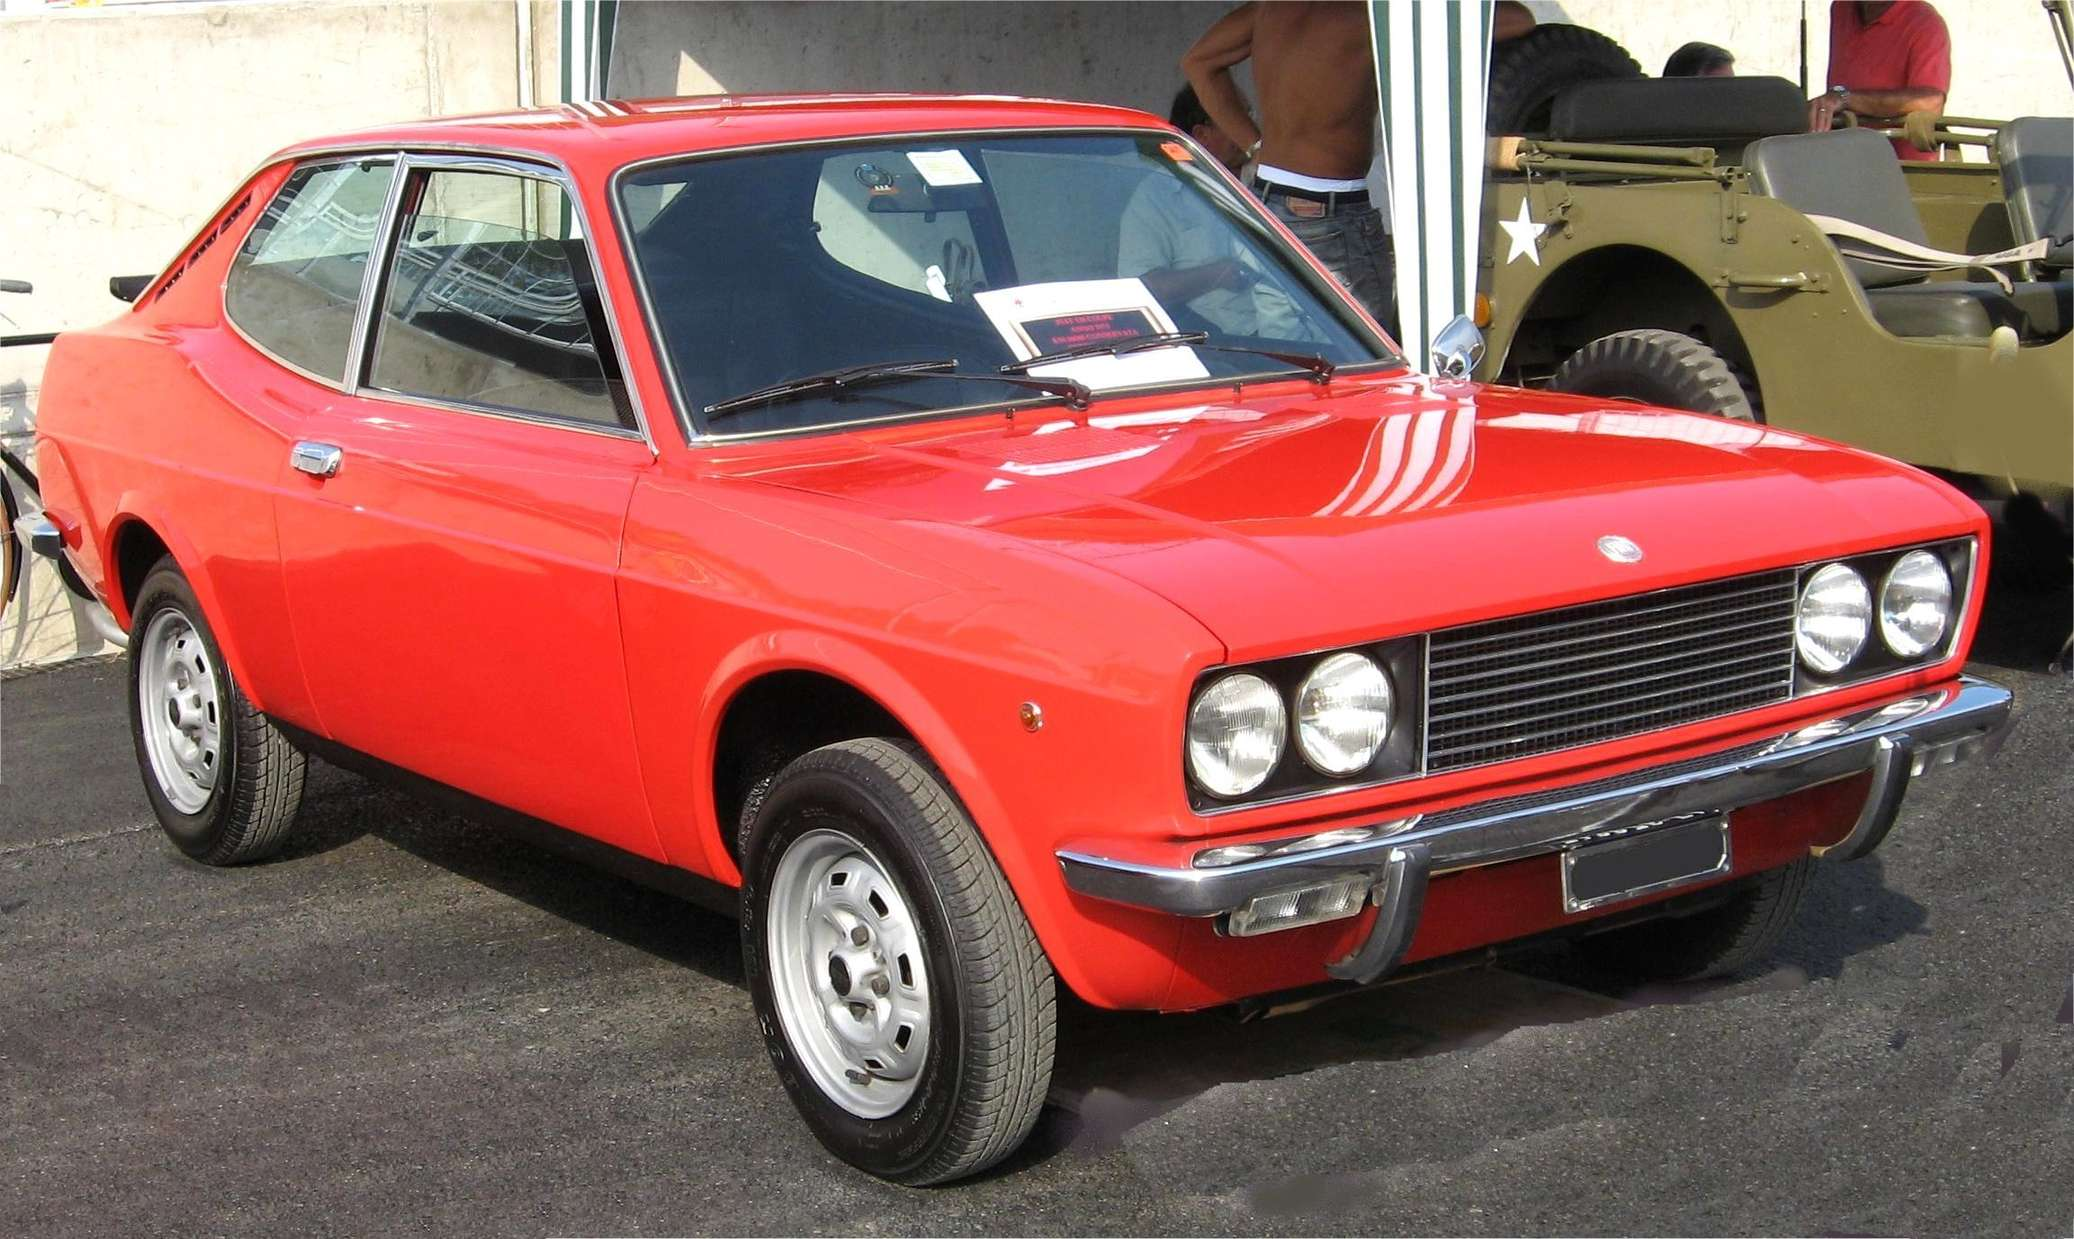 Fiat 128 coupe #8833253